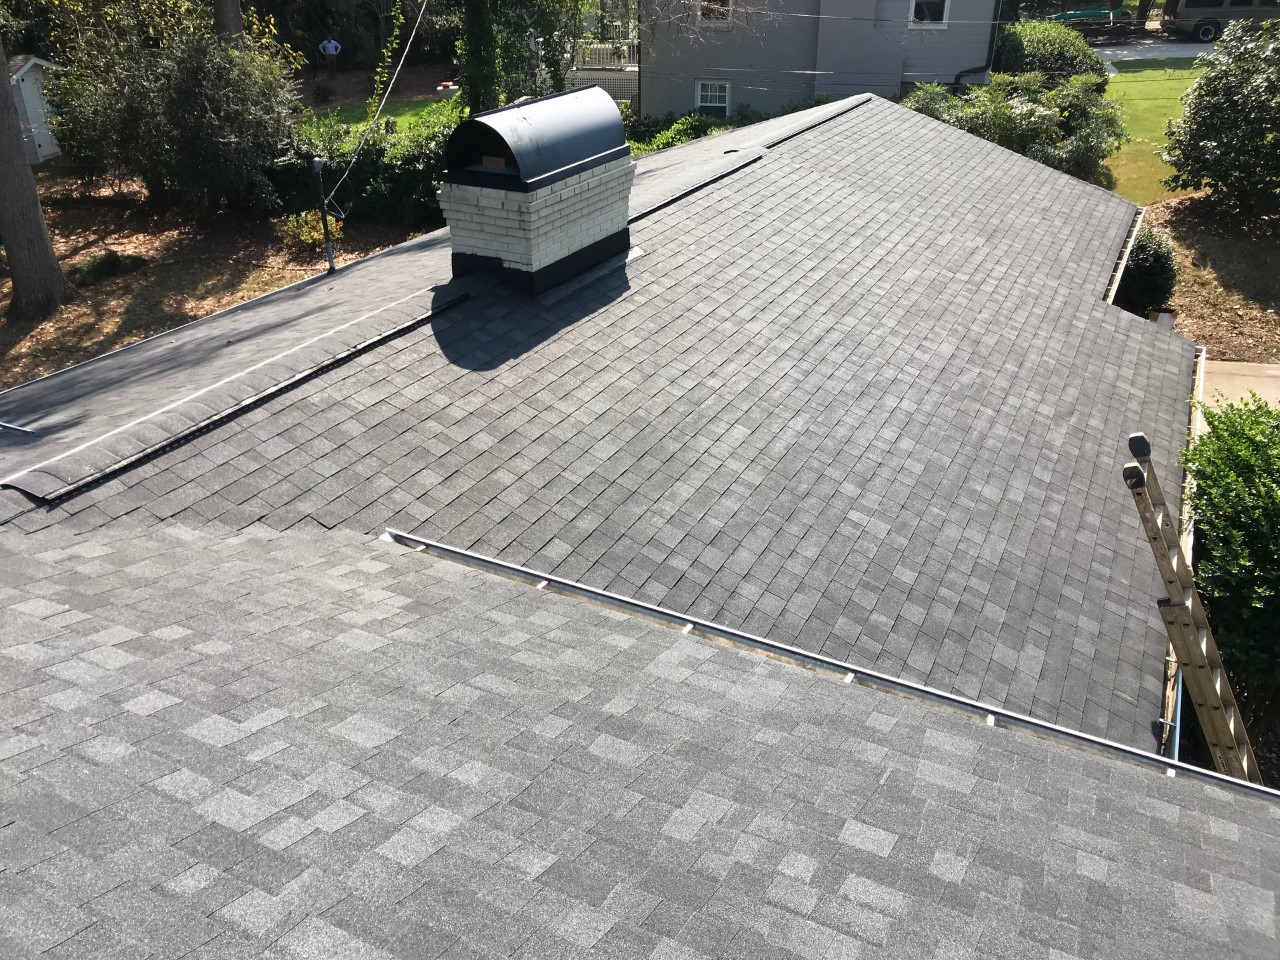 Completed south charlotte roof replacement